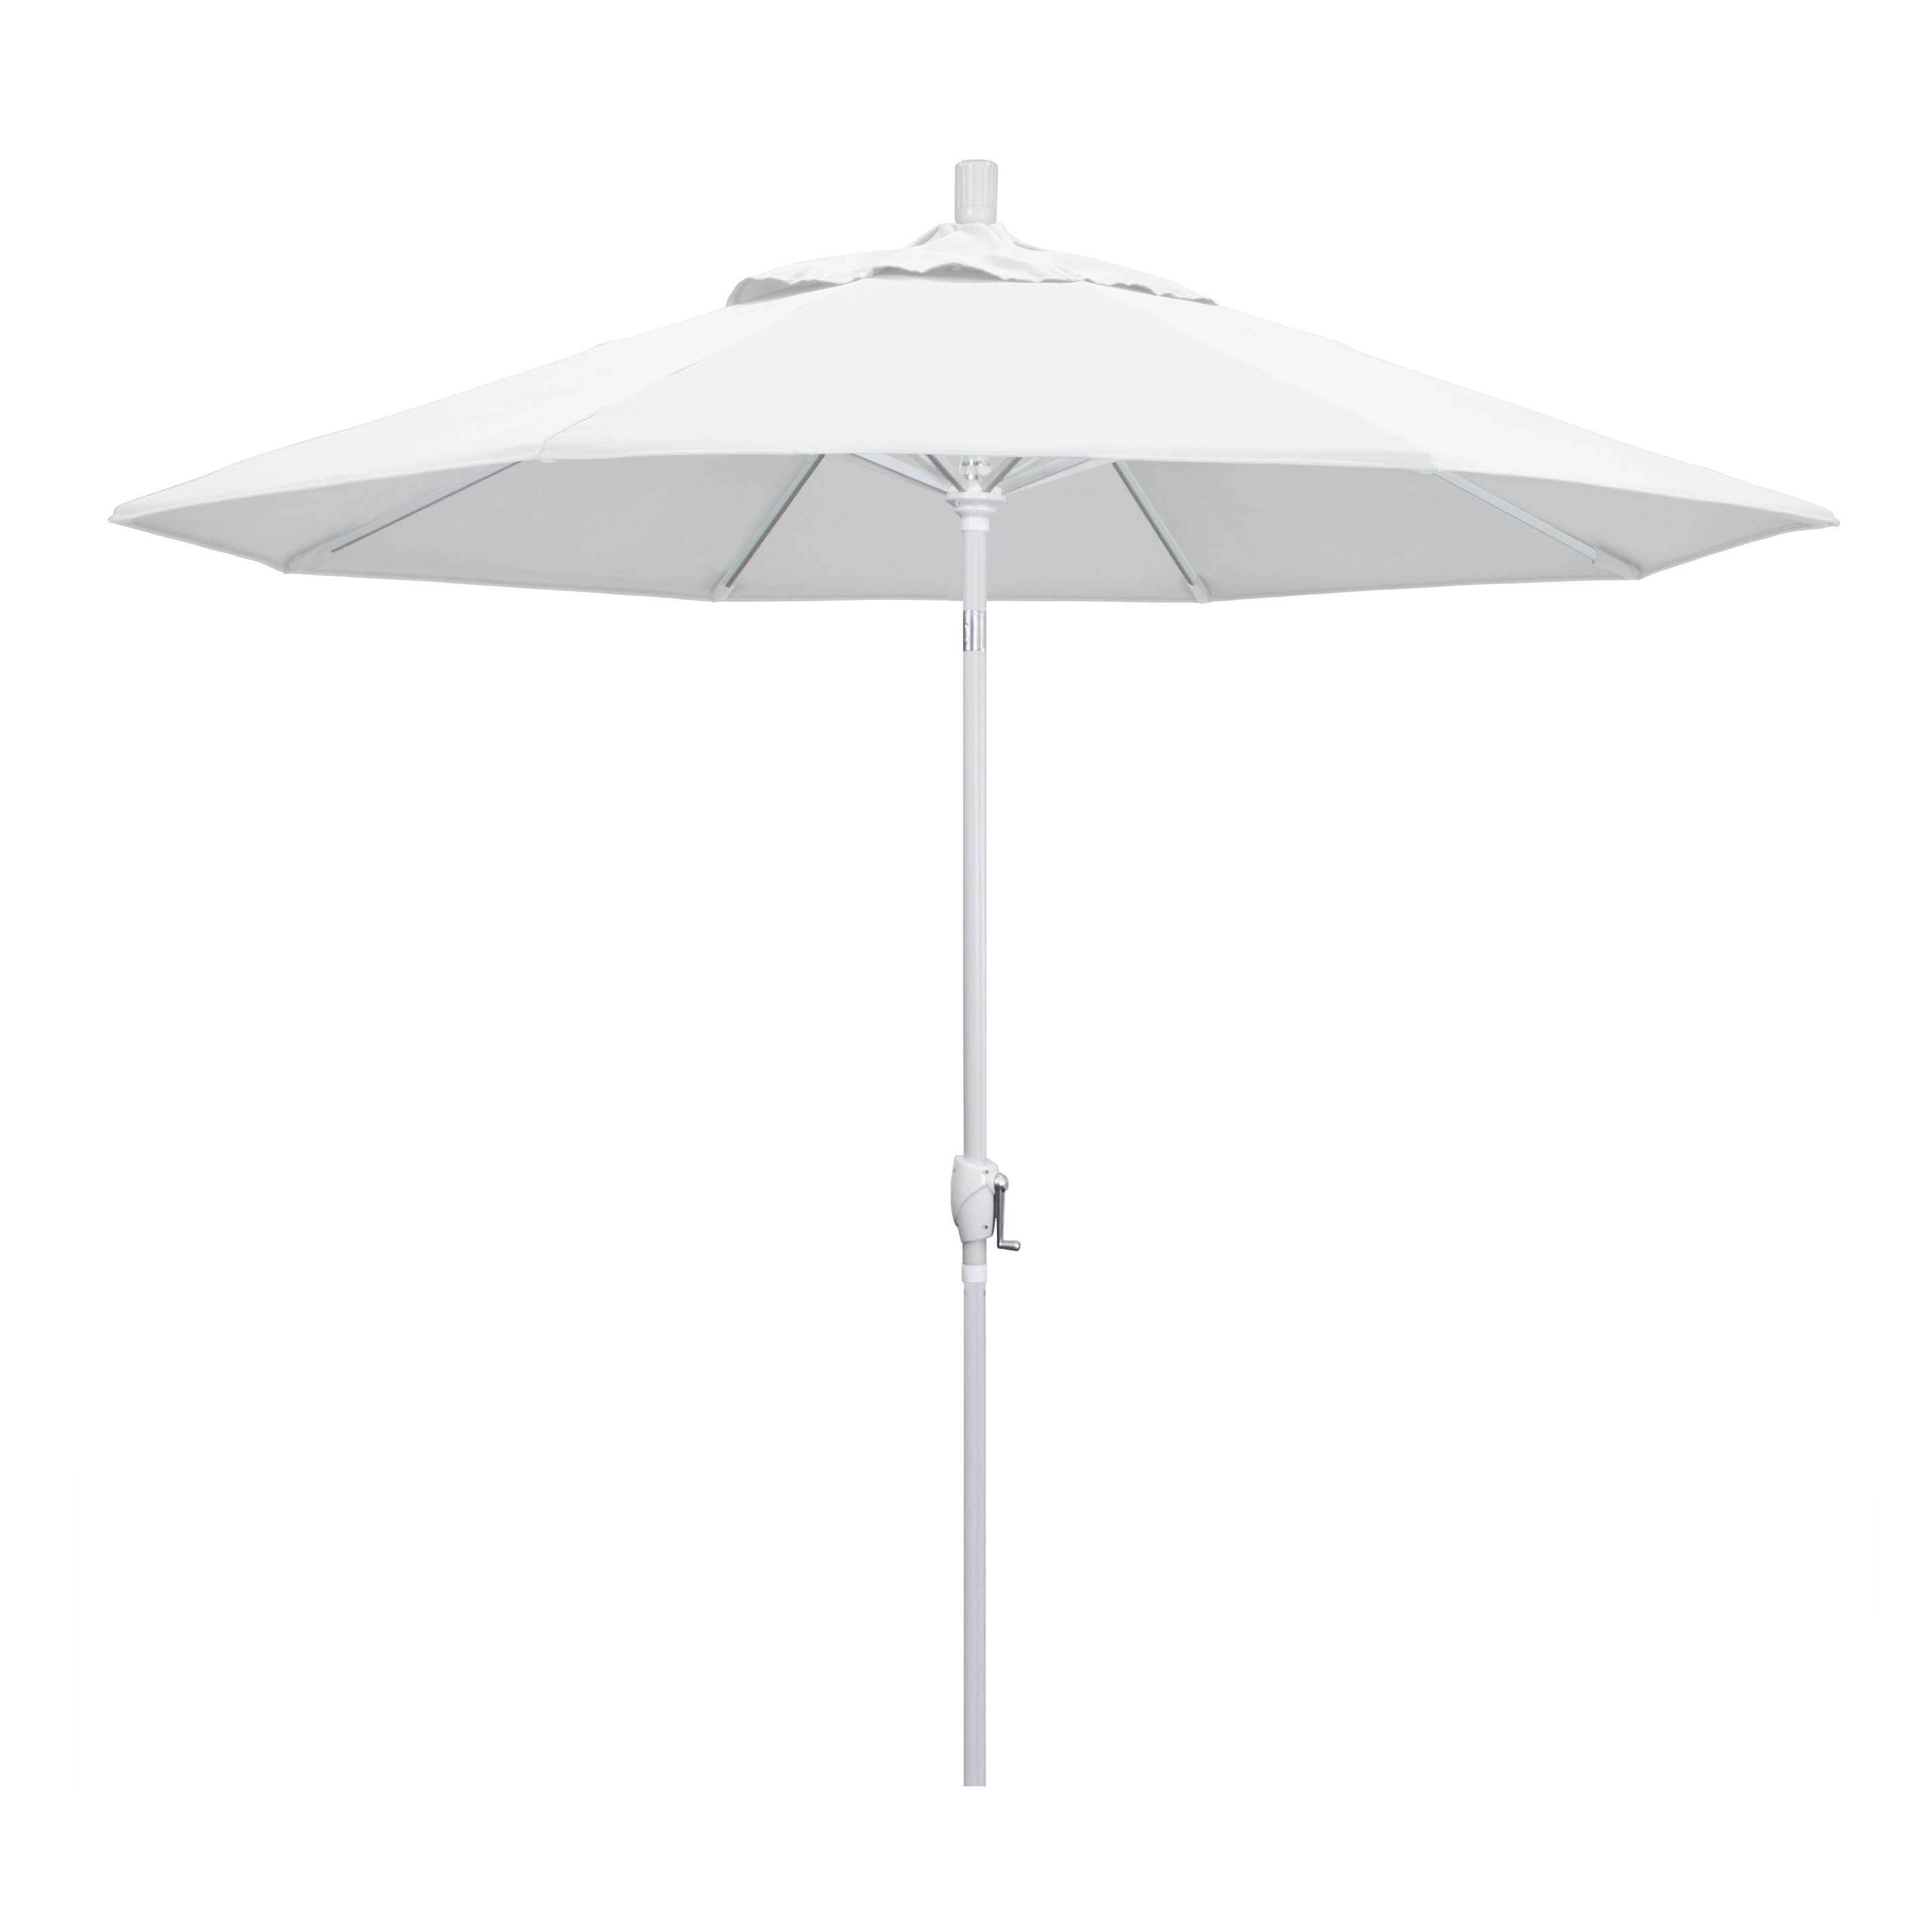 Newest Monty Market Umbrellas Pertaining To Darby Home Co Wallach 9' Market Umbrella (View 17 of 20)